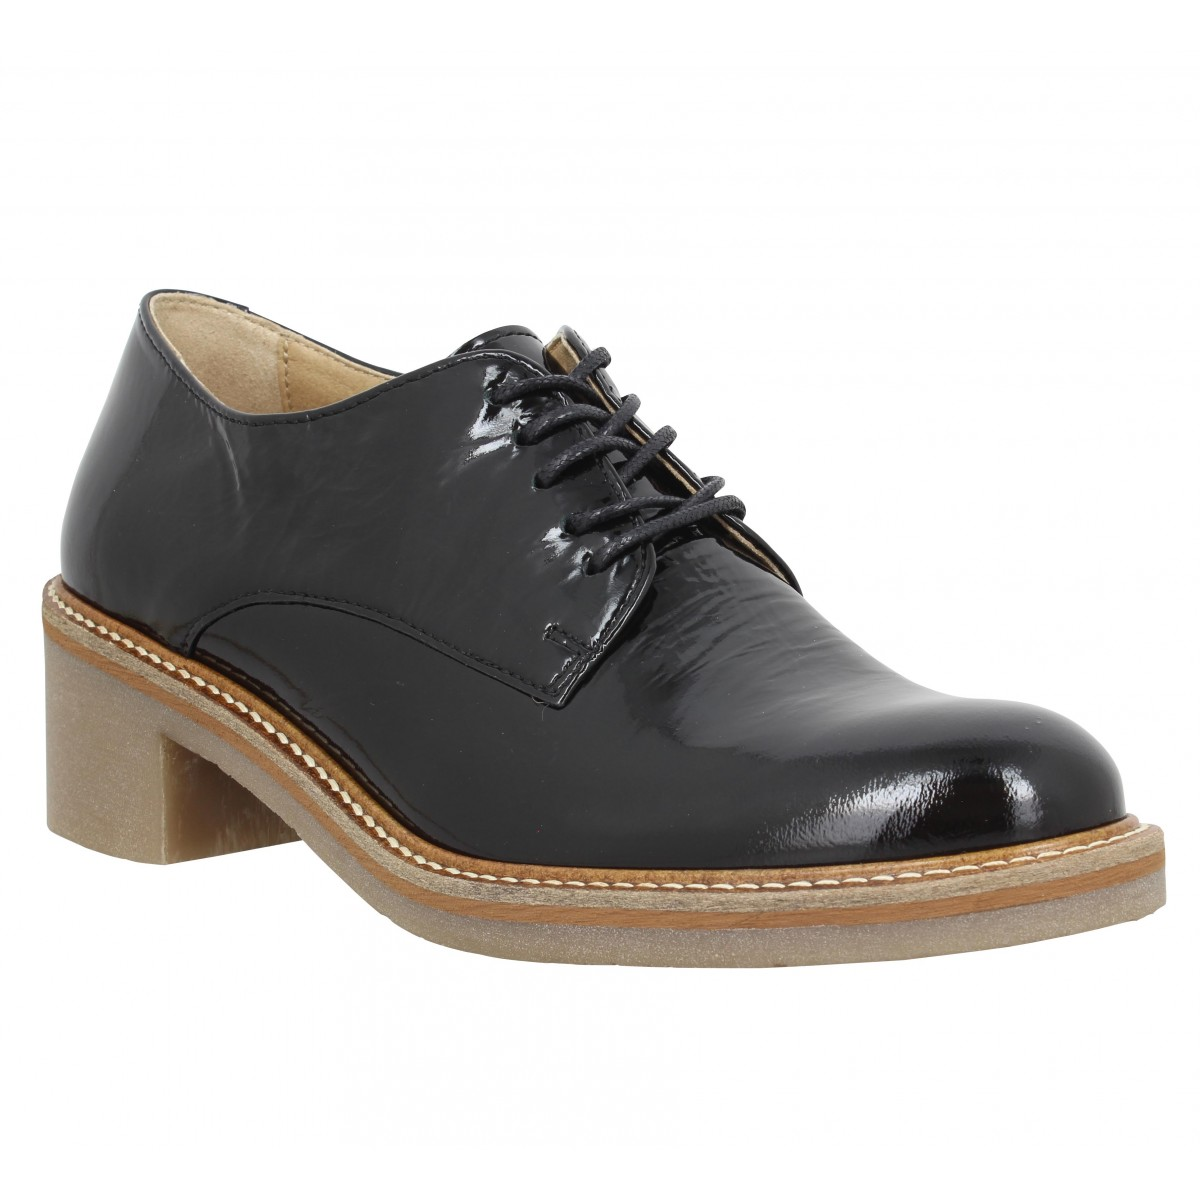 Chaussures à lacets KICKERS Oxyby vernis Femme Noir